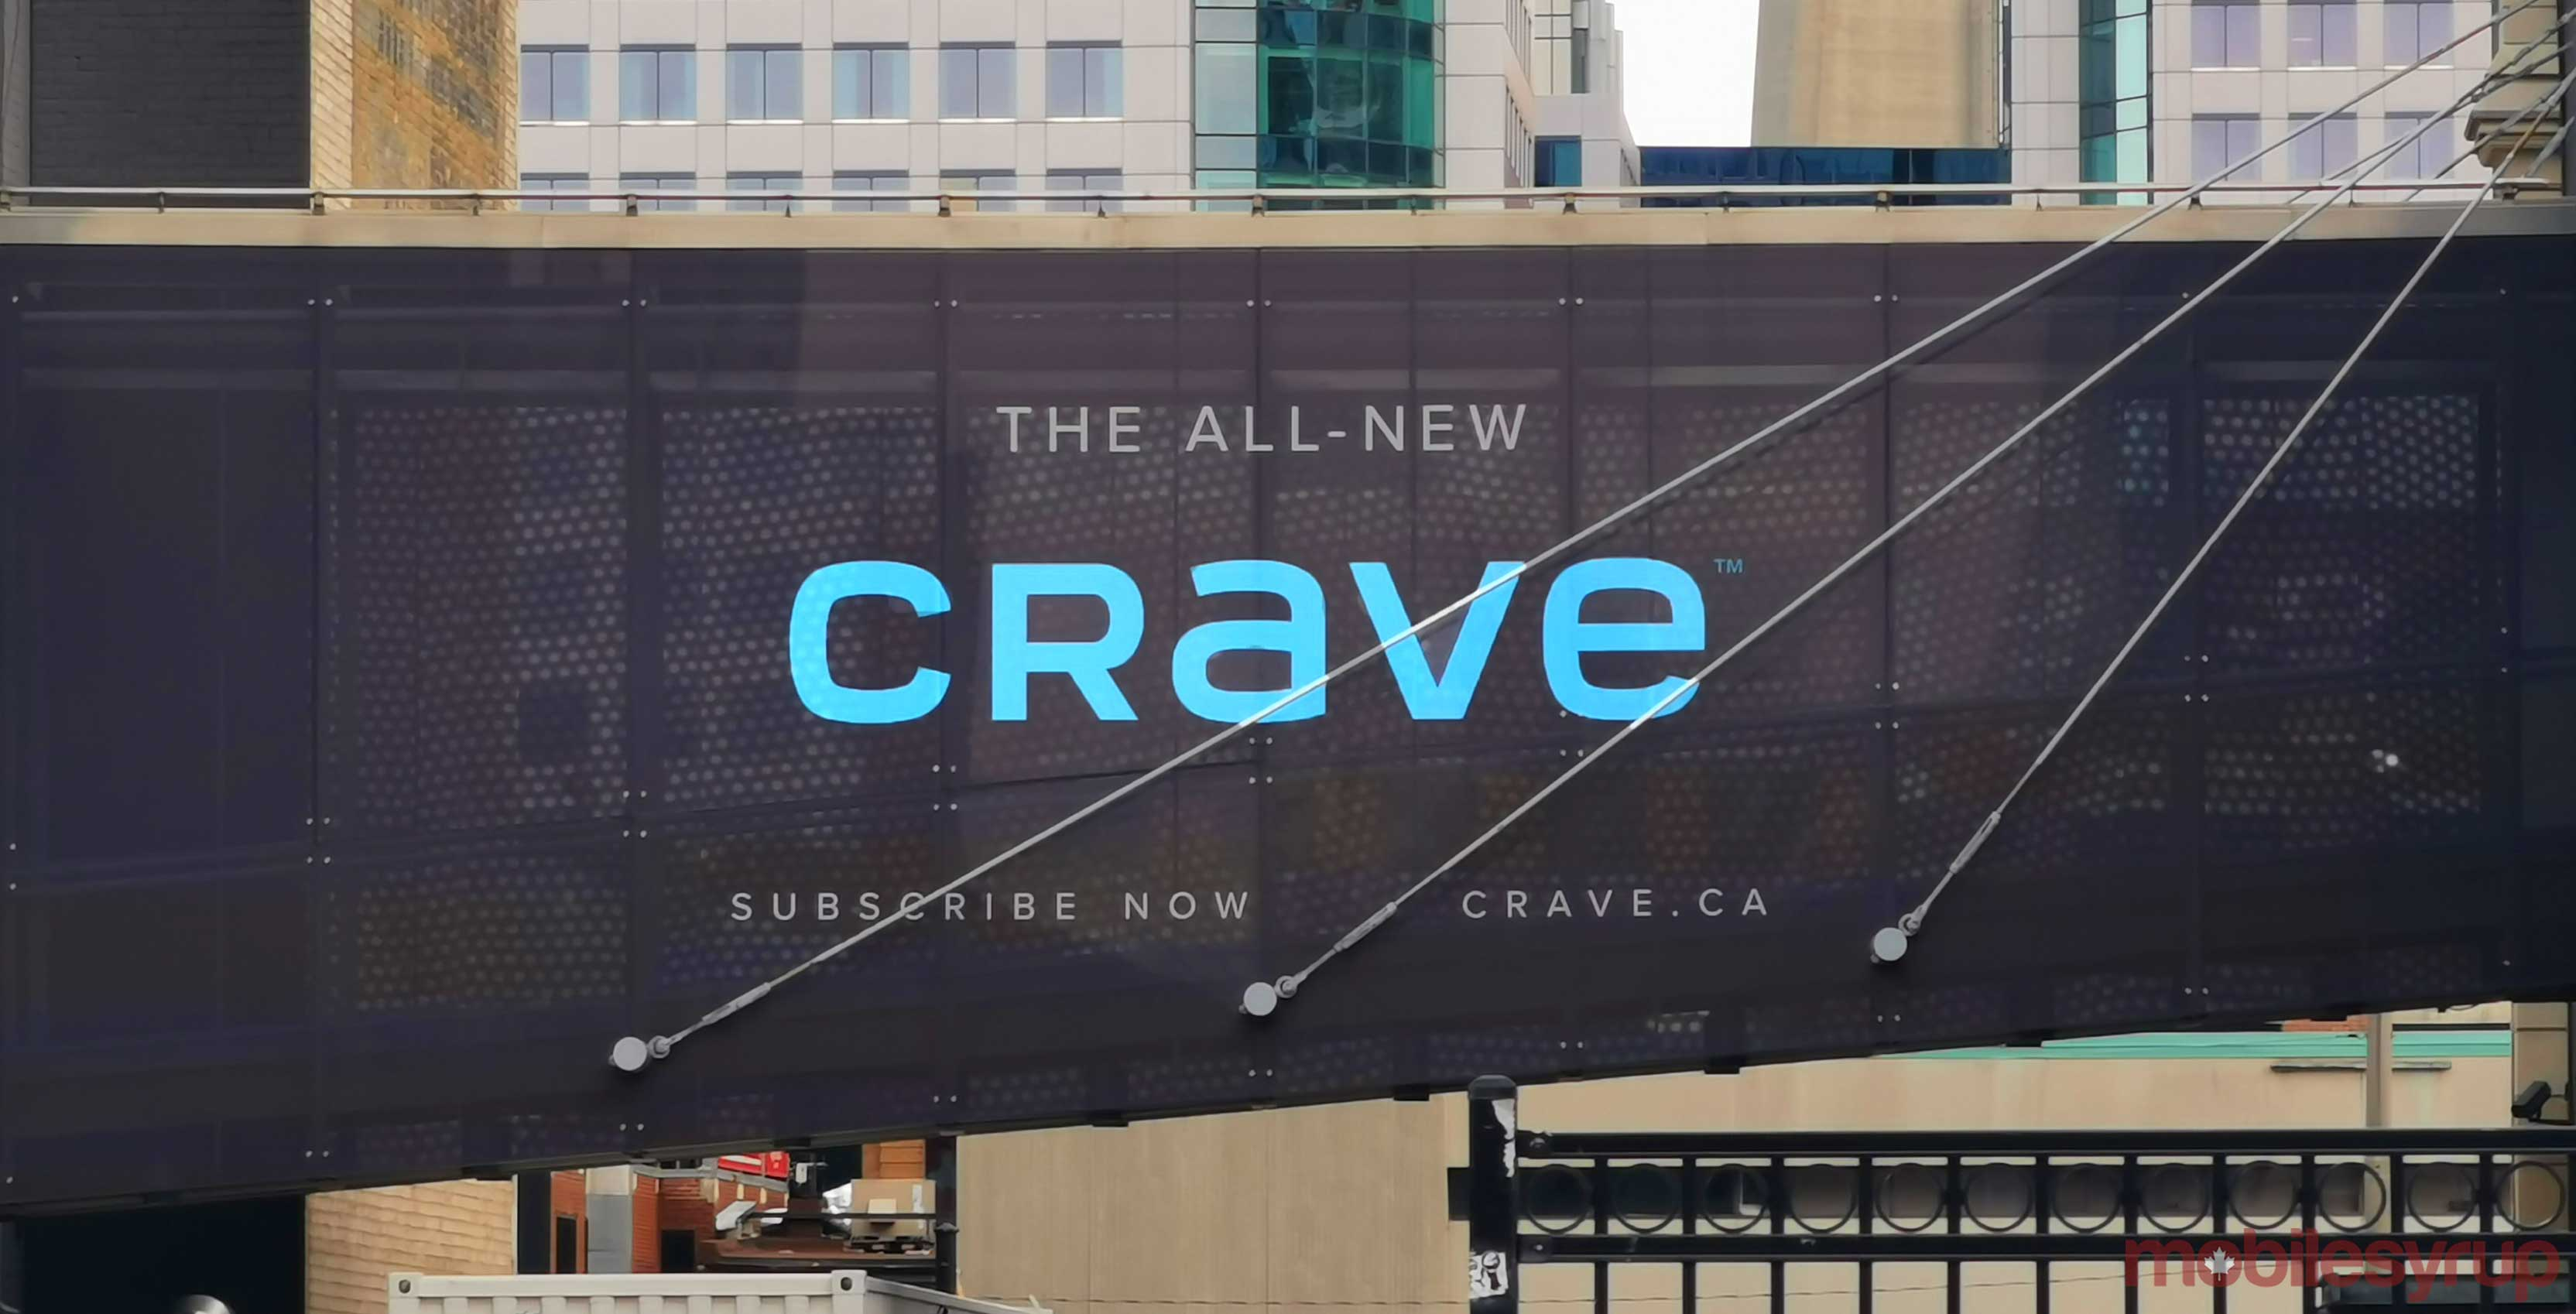 Latest Crave update breaks app on Samsung smart TVs